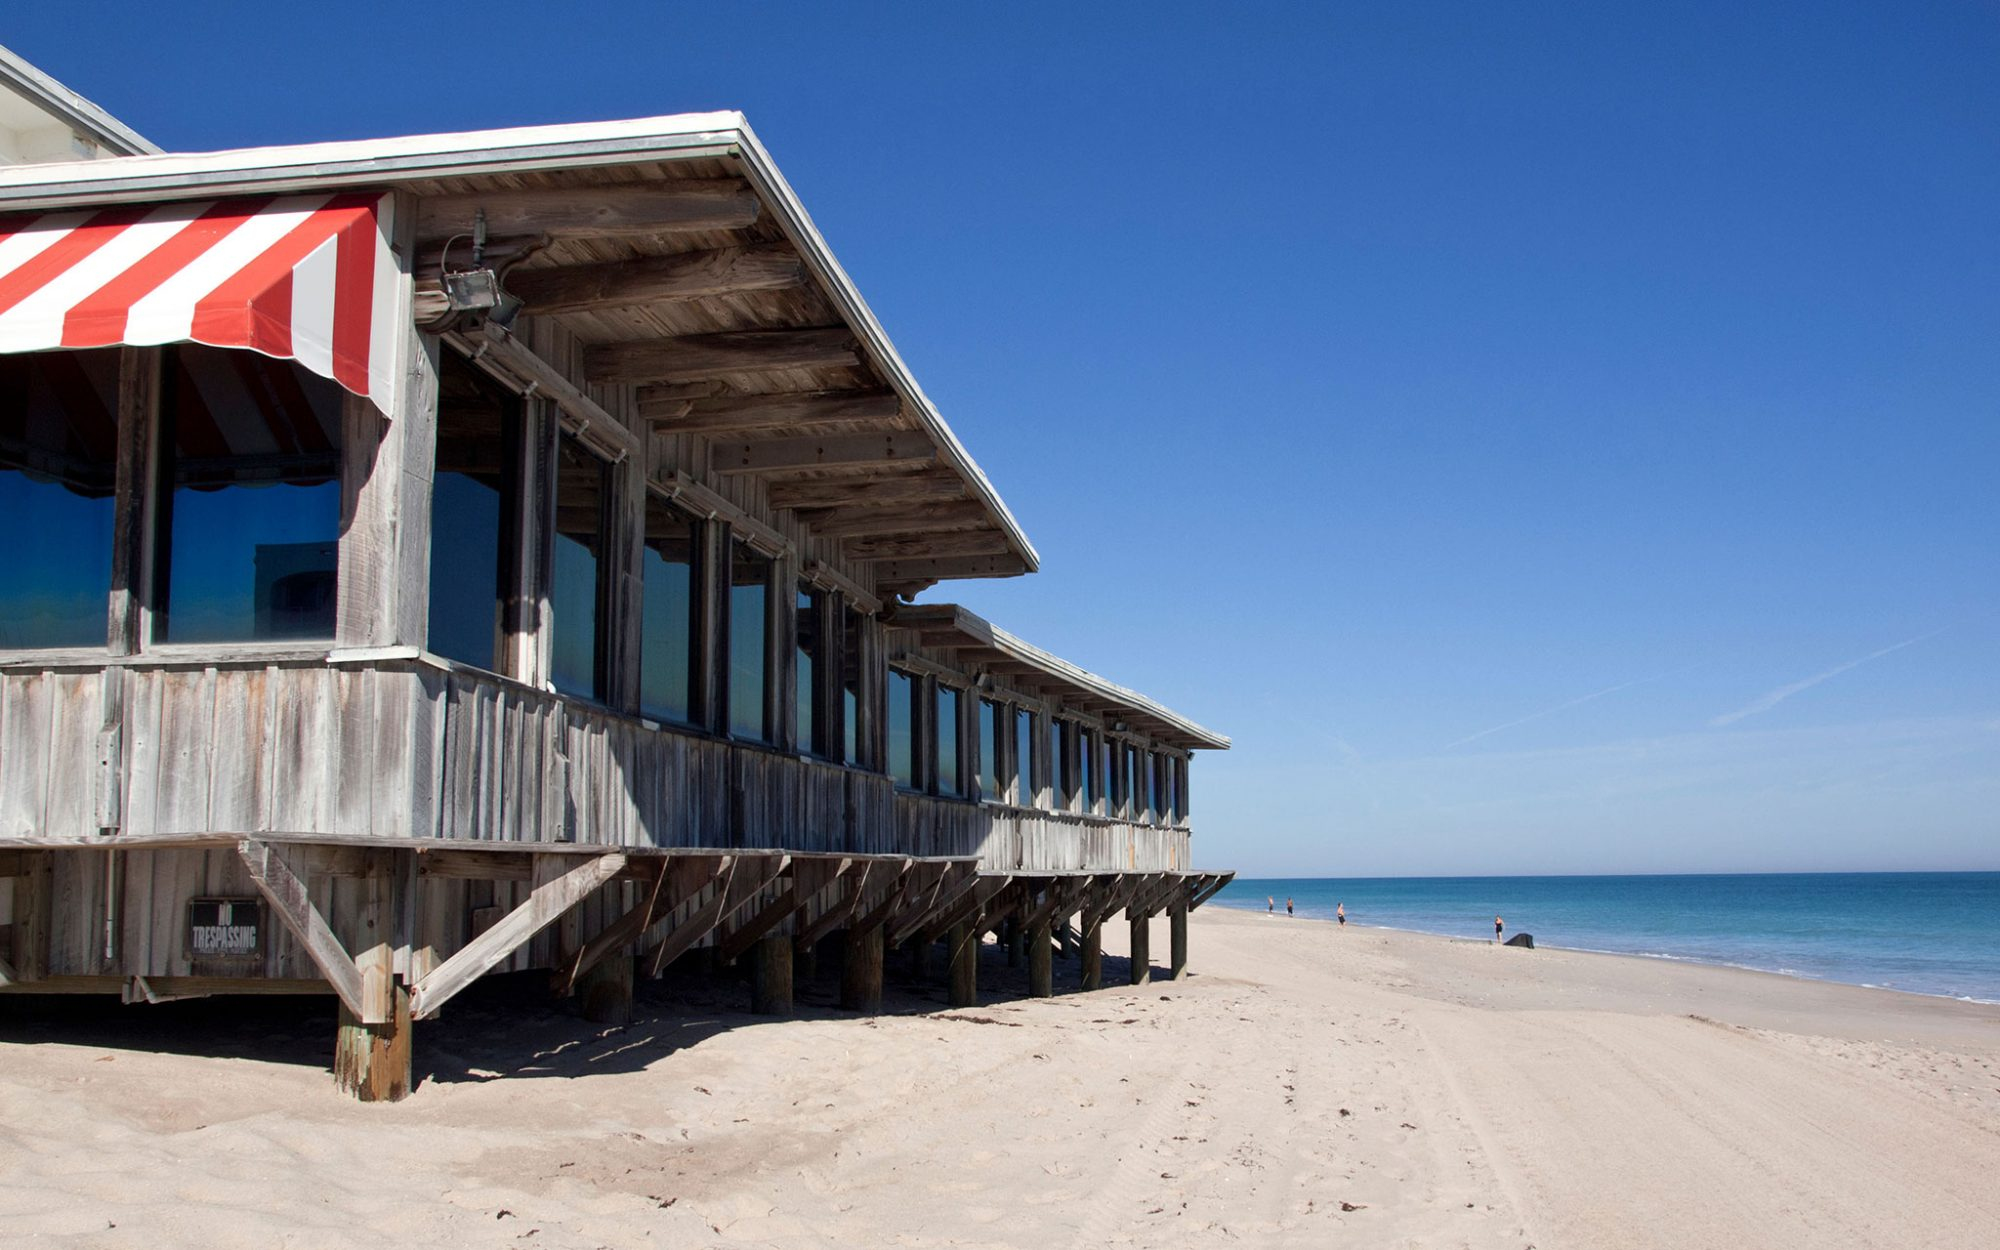 Best Beach Weekend Getaways: Hit the Sand in Vero Beach, FL